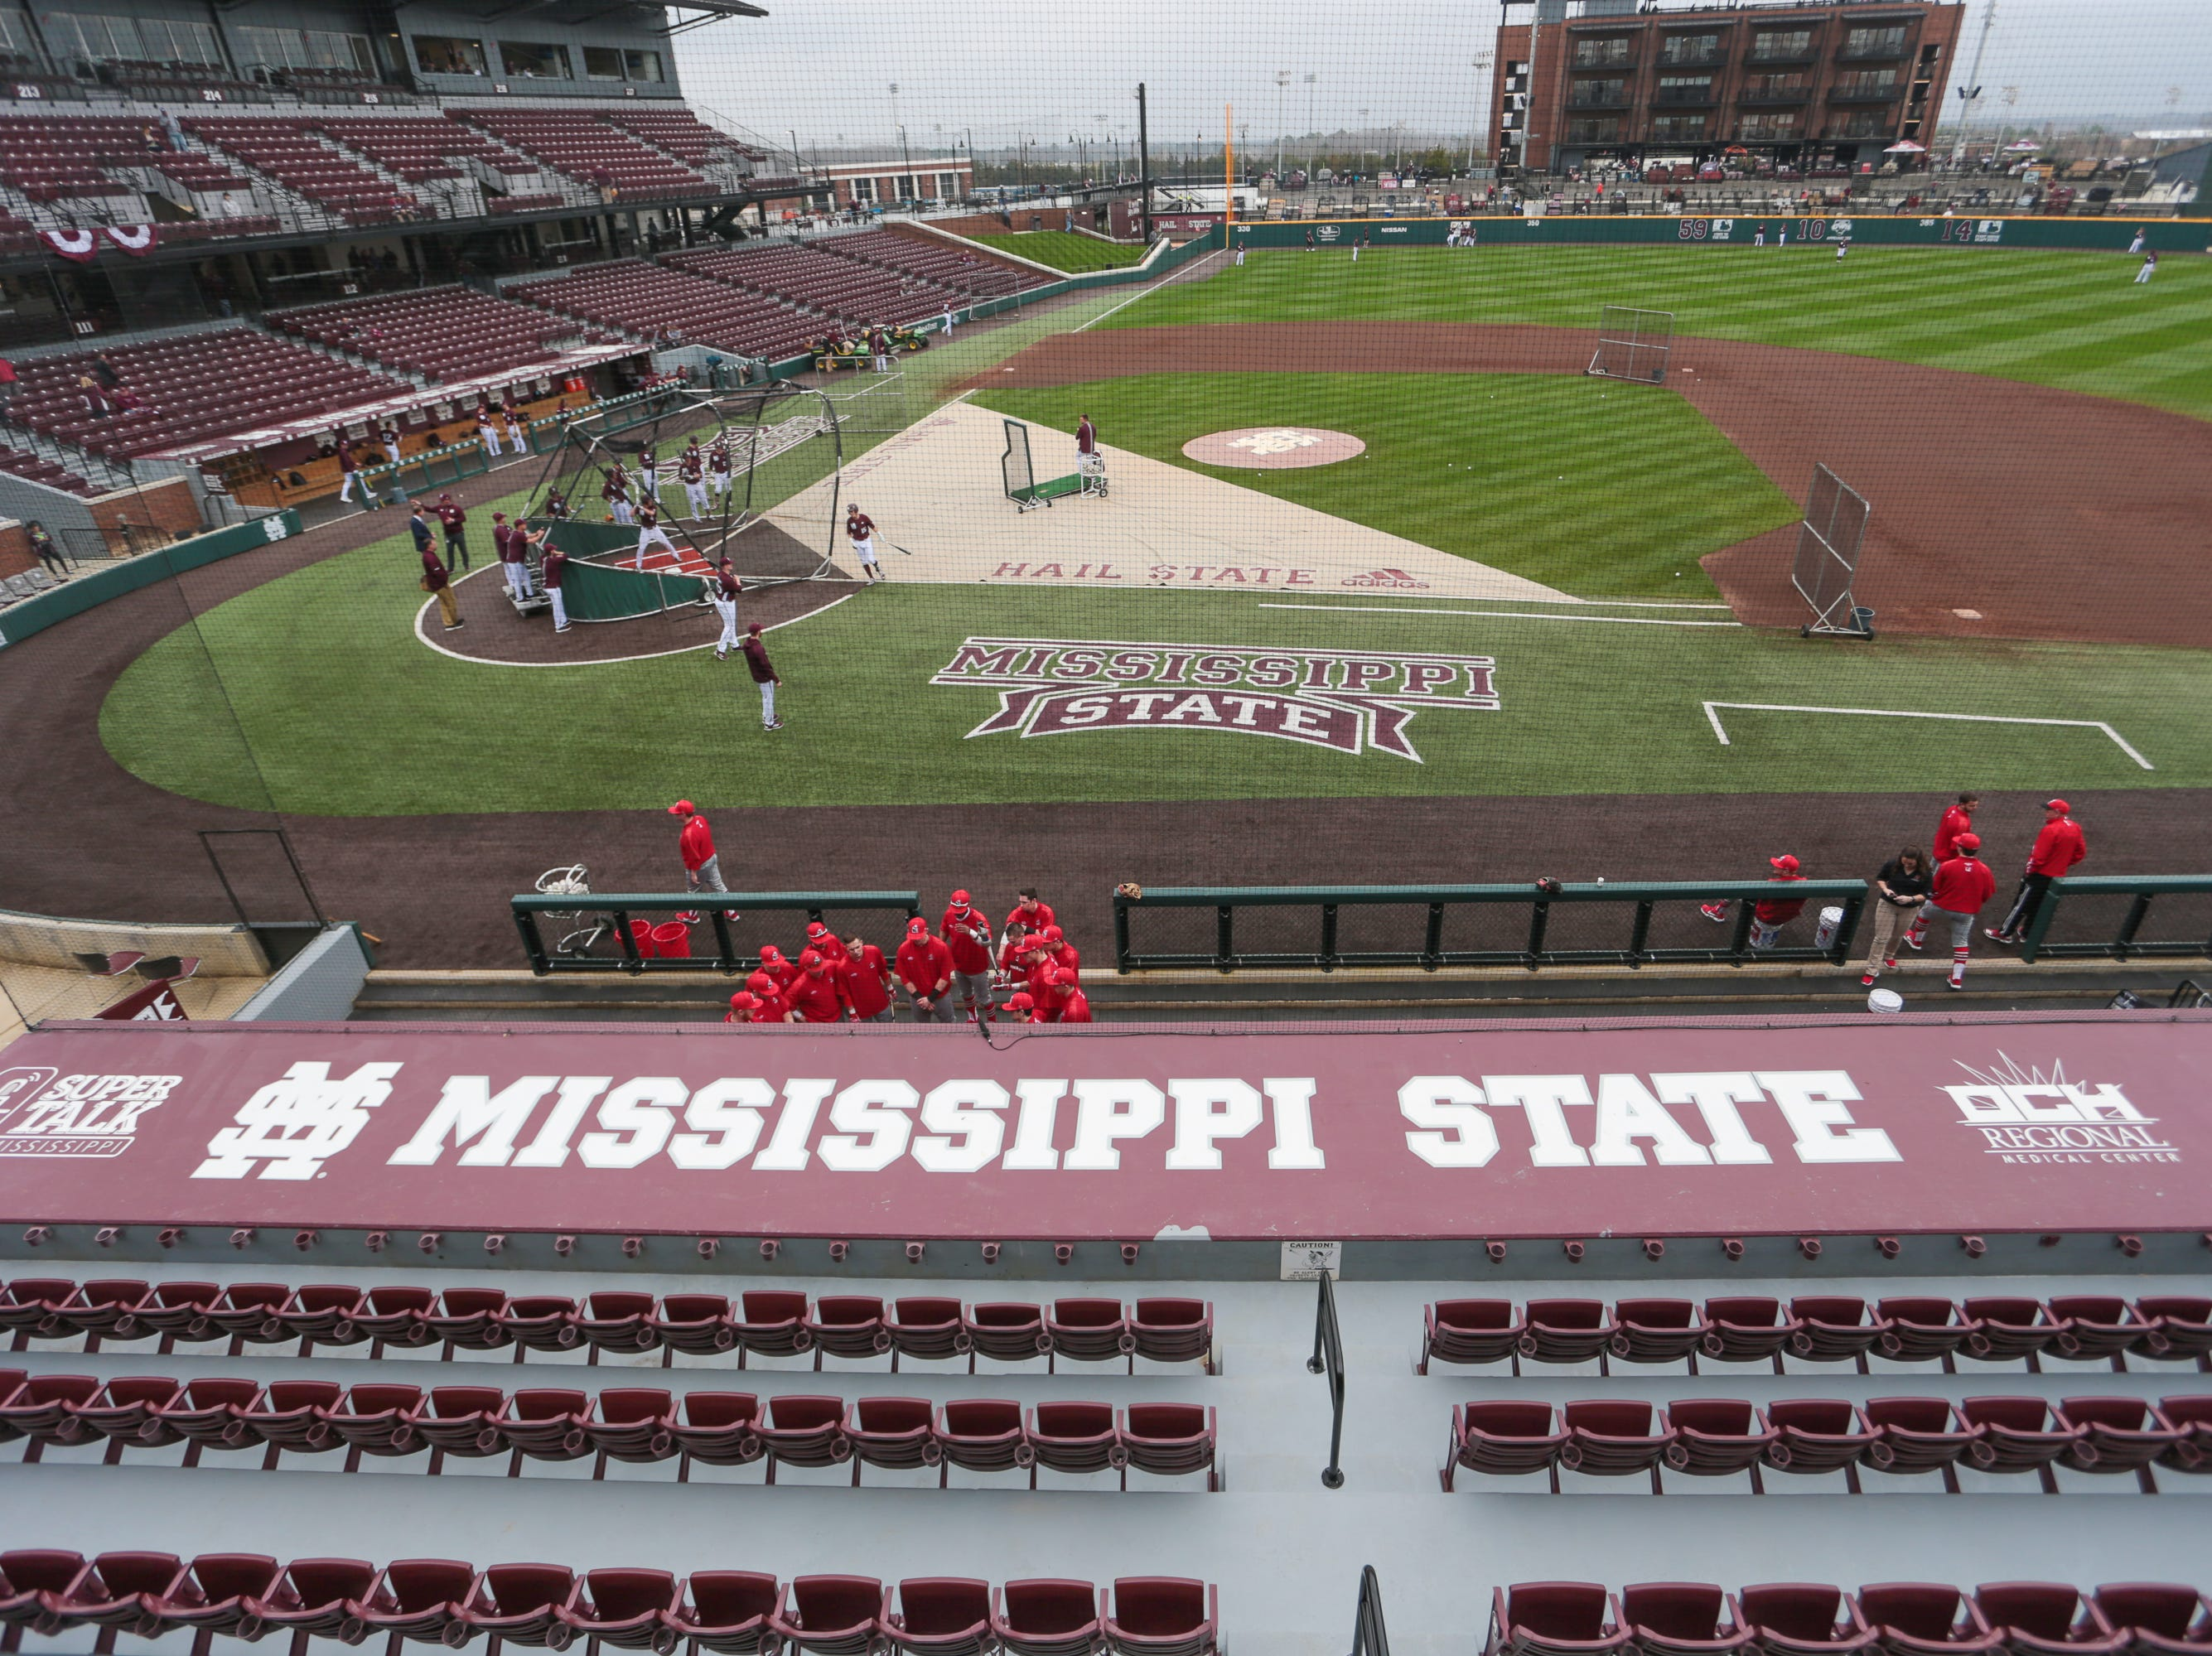 Mississippi State opened the 2019 baseball season against Youngstown State on Friday, February 15, 2019. Photo by Keith Warren